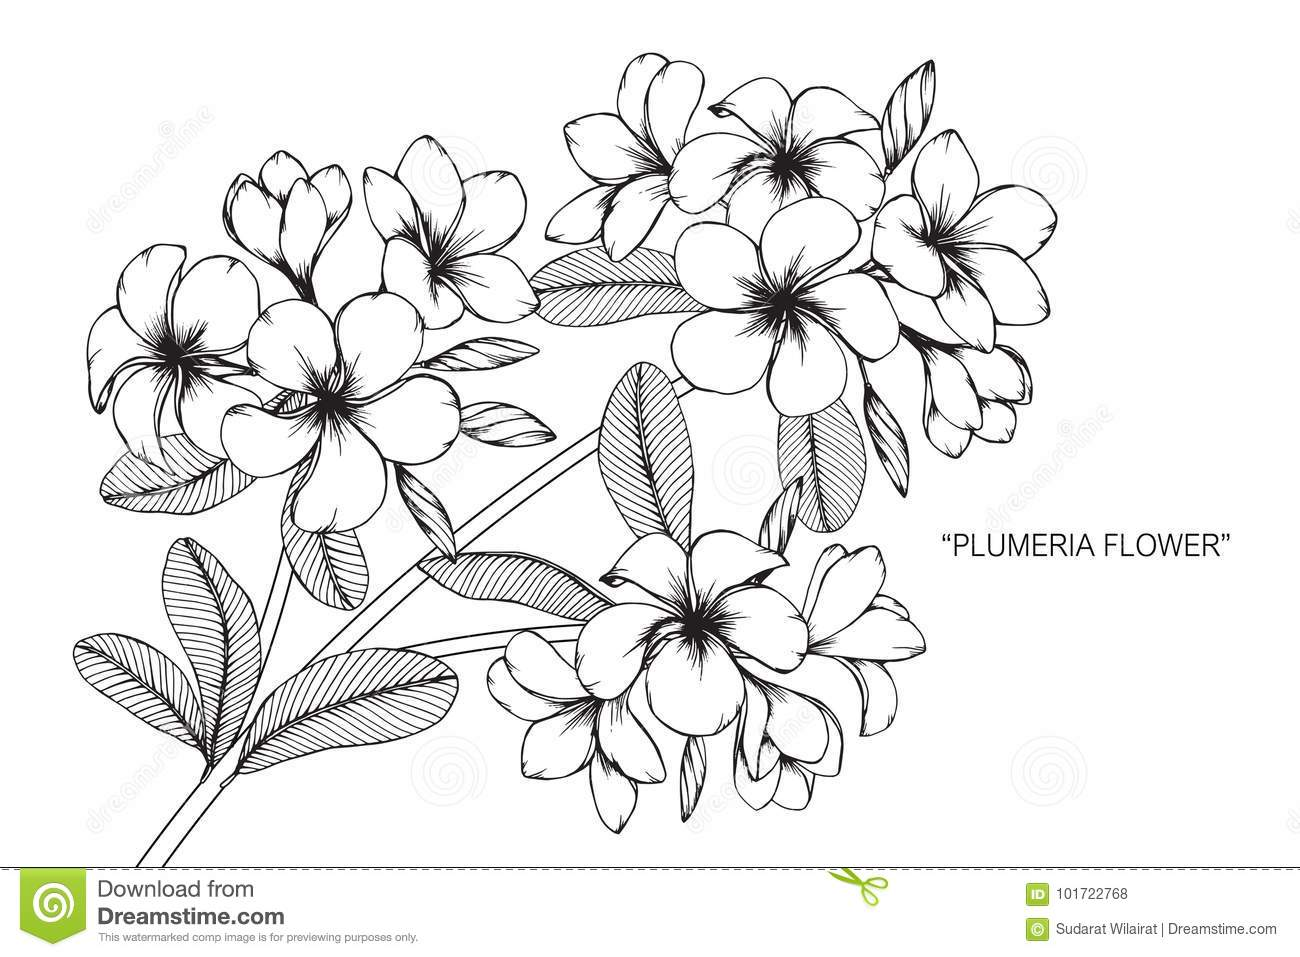 7343f6756 Plumeria flower drawing and sketch with line-art on white backgrounds.